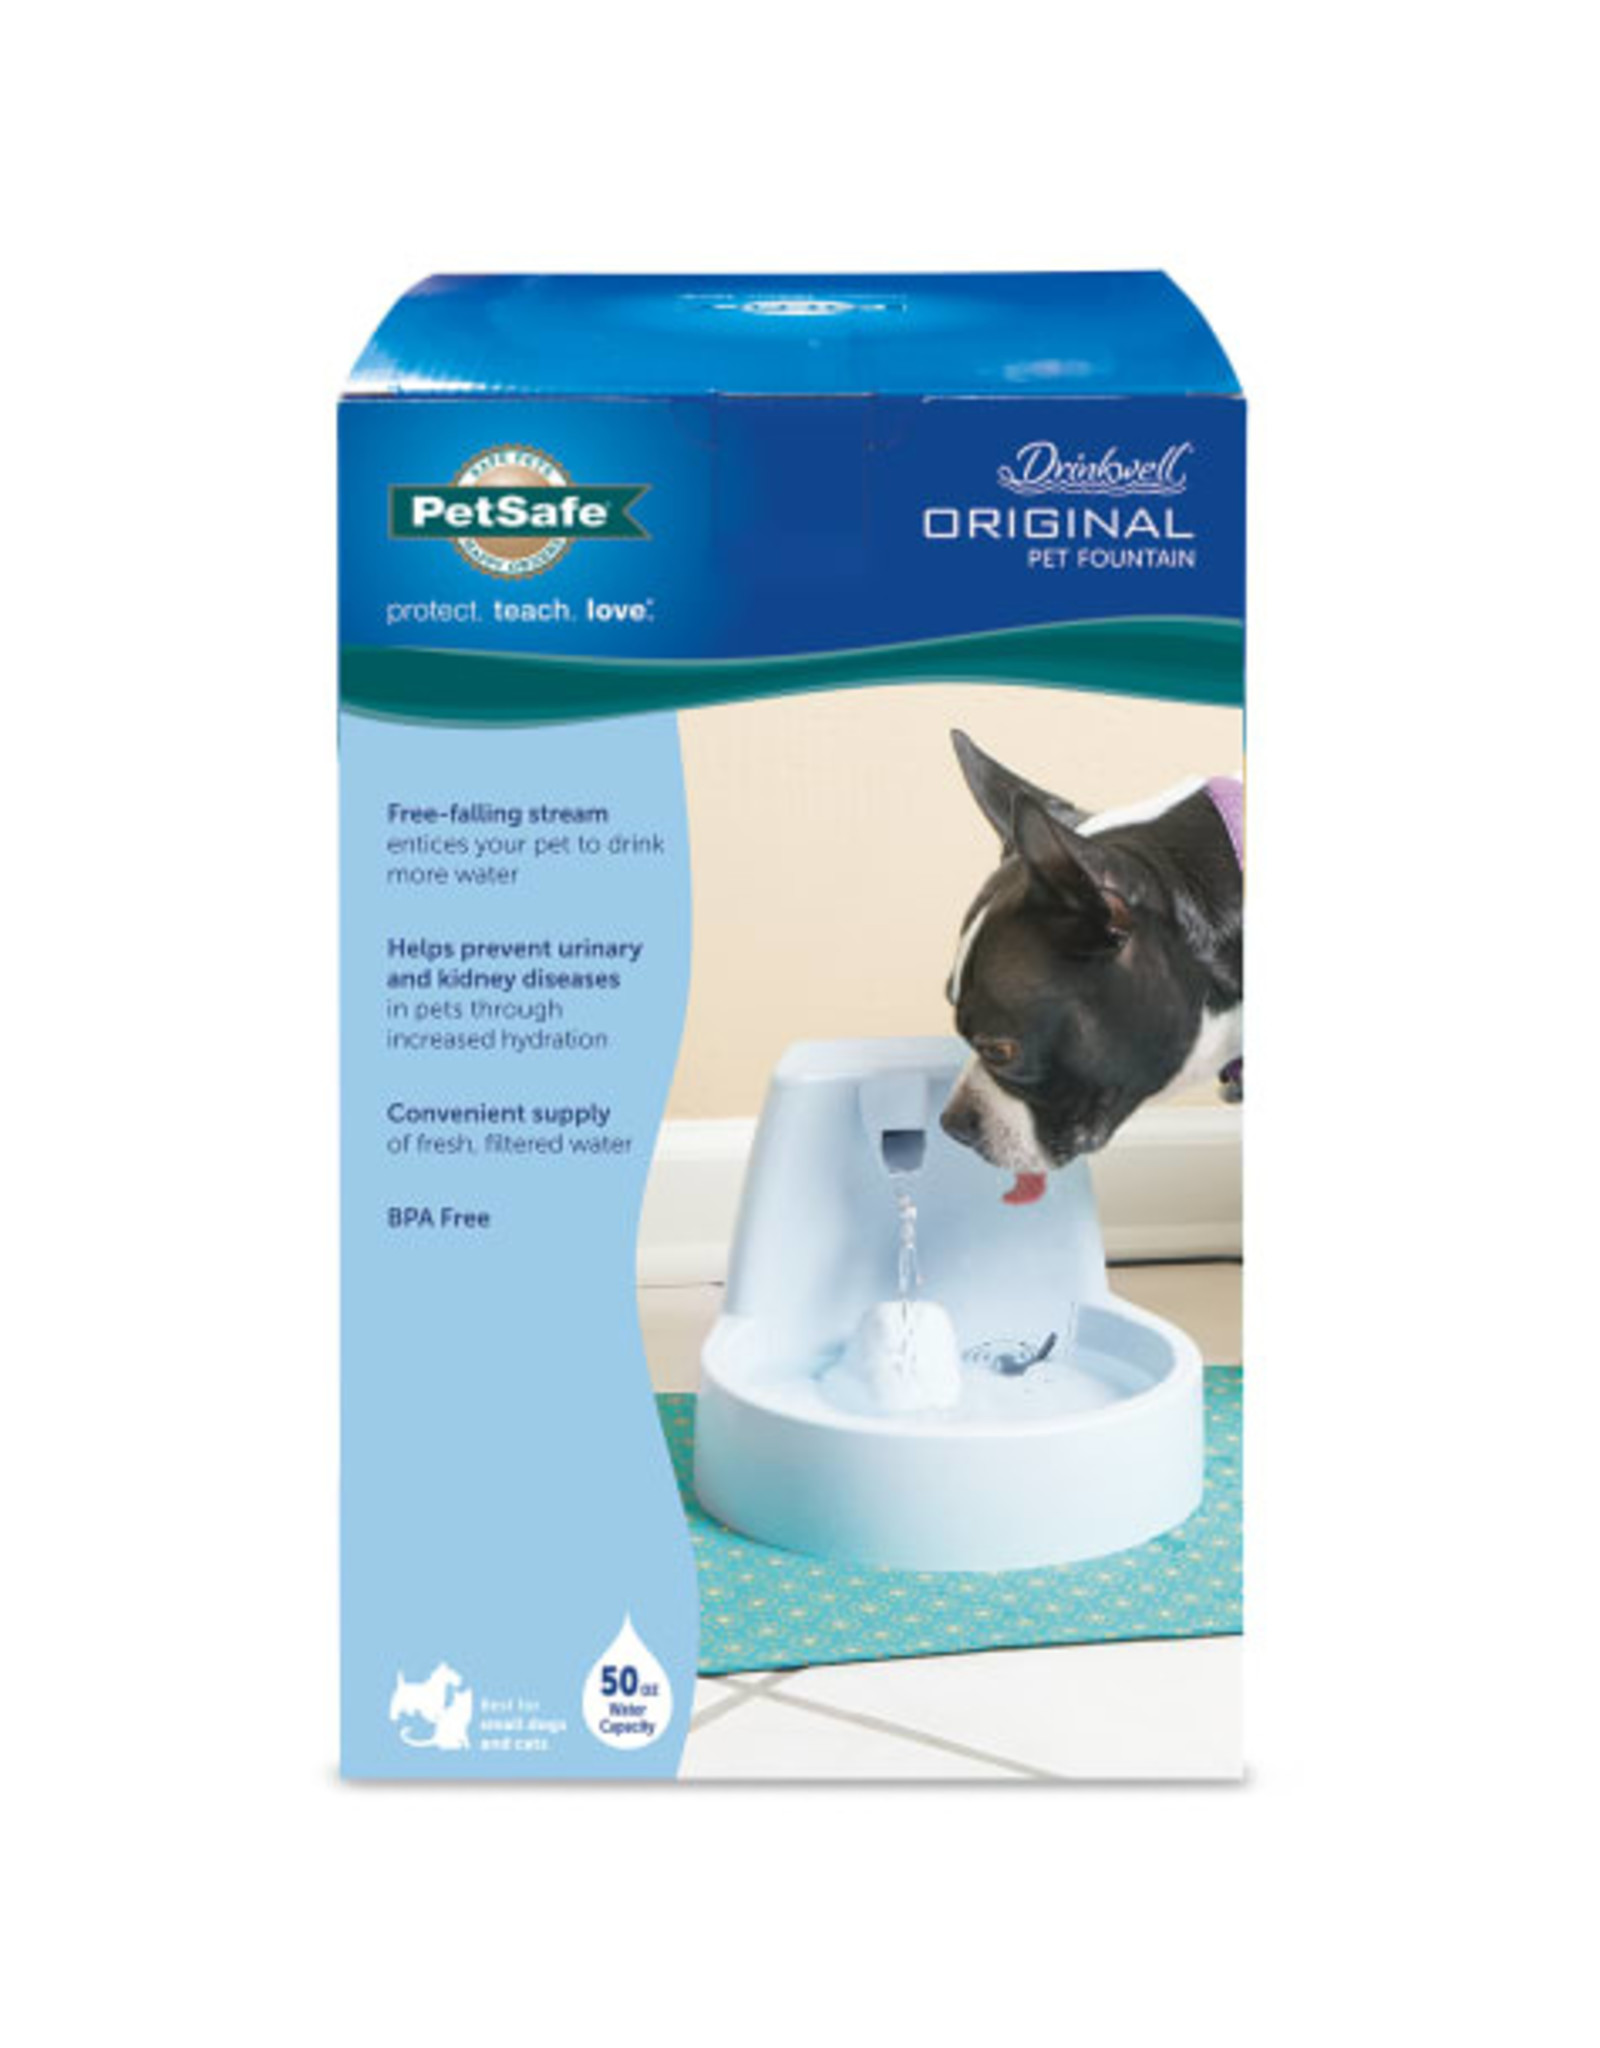 PetSafe PetSafe Drinkwell Original Water Fountain 50oz